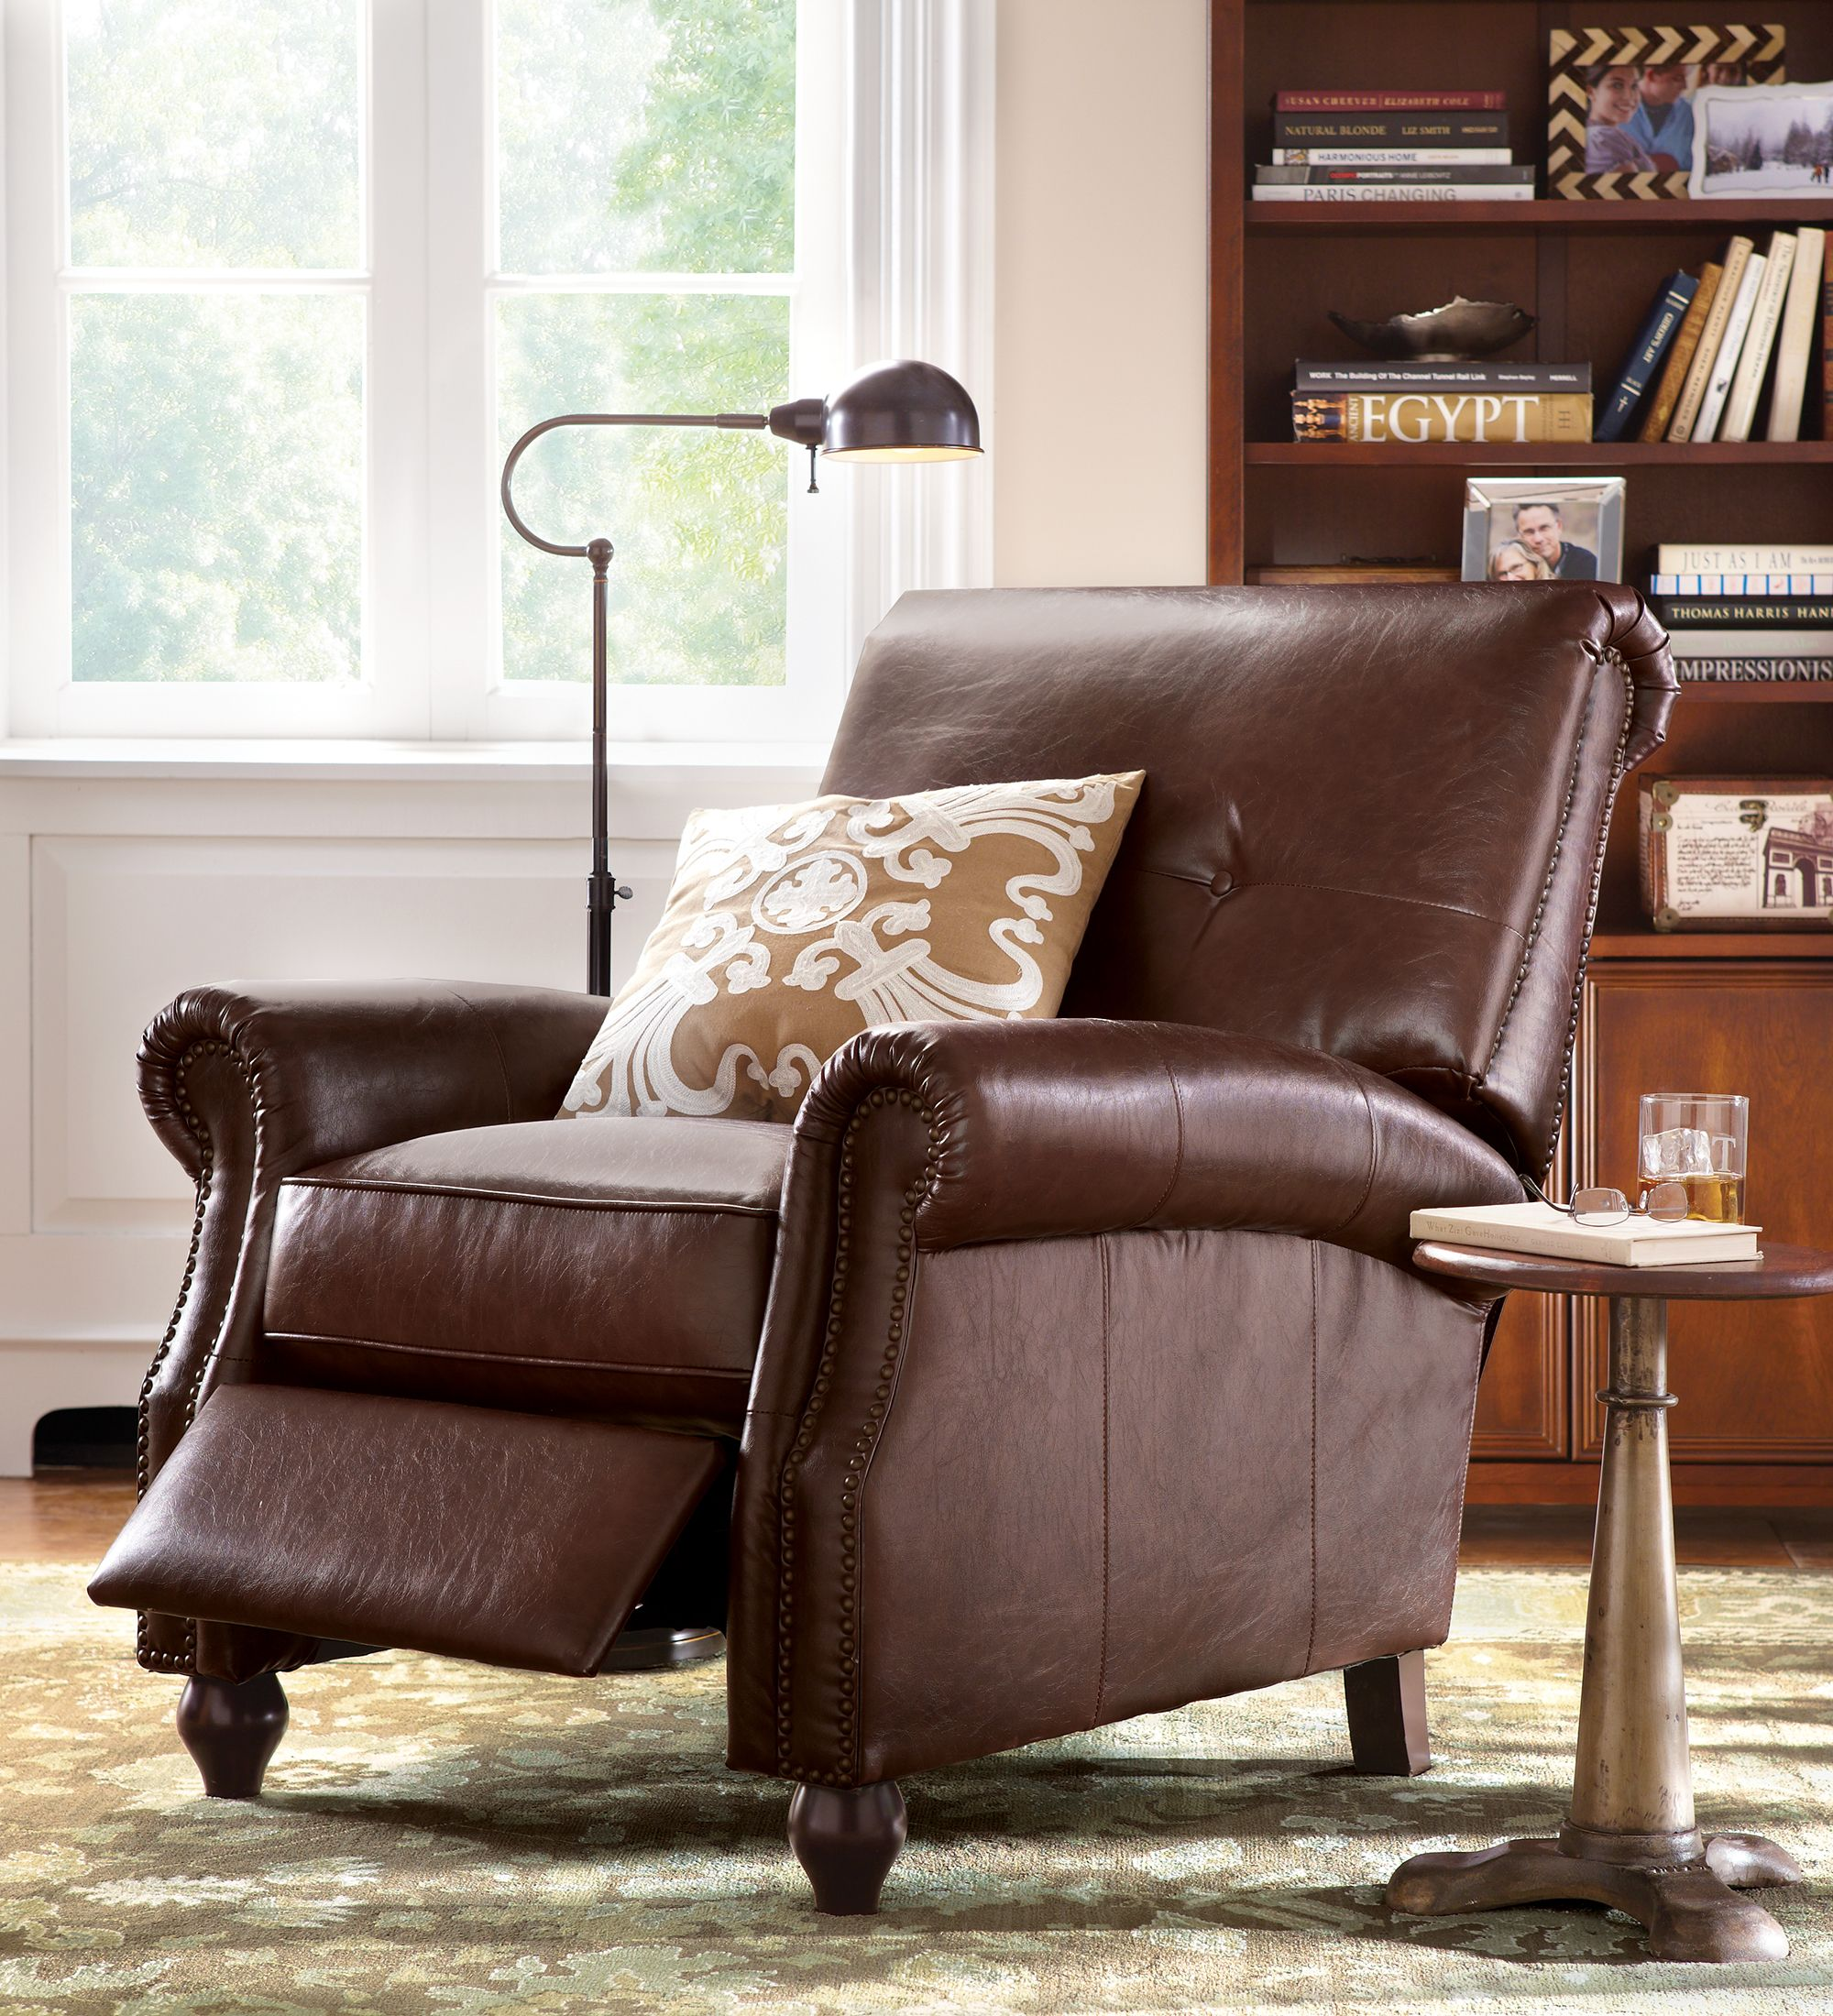 Kick And Relax In Comfy Stylish Recliner